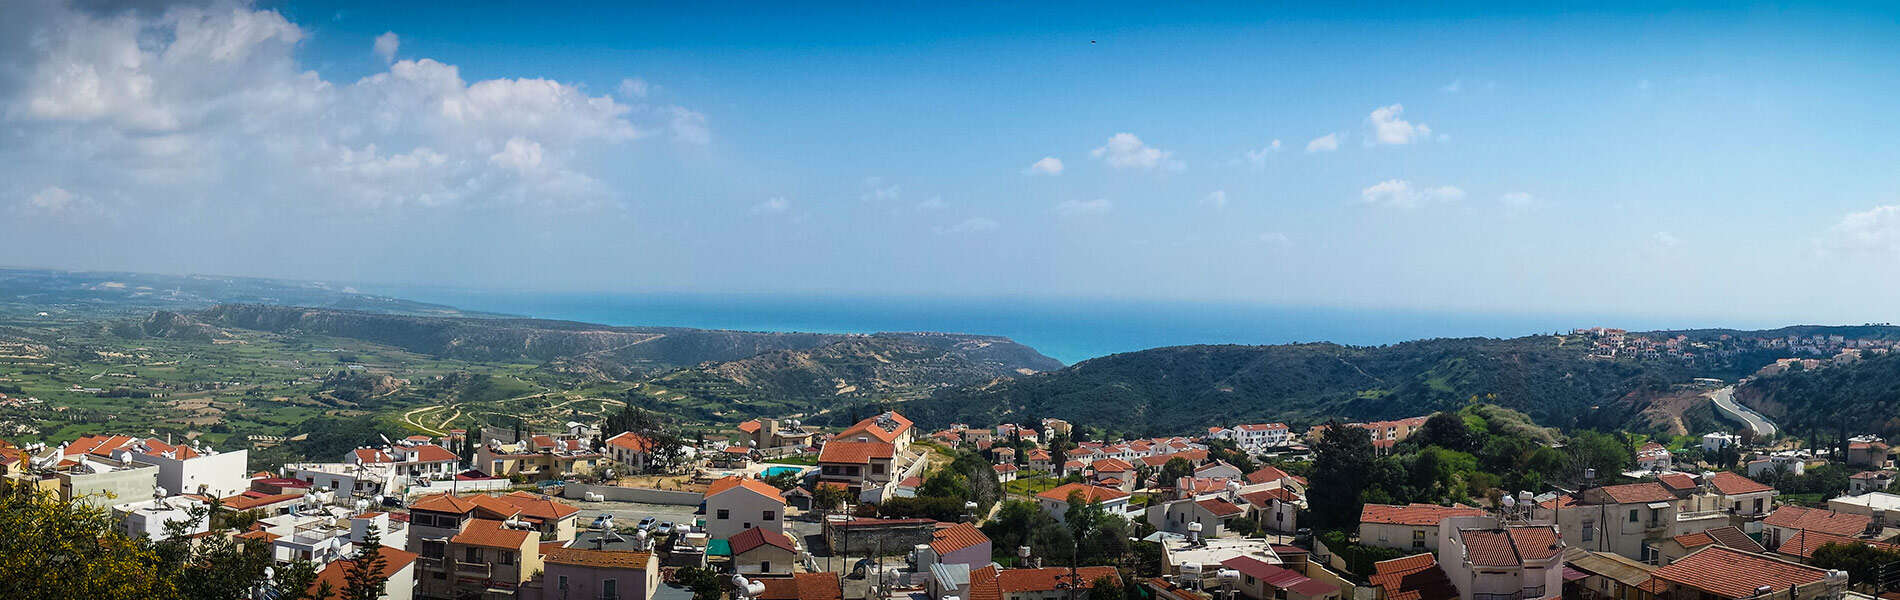 Apartments in Pissouri